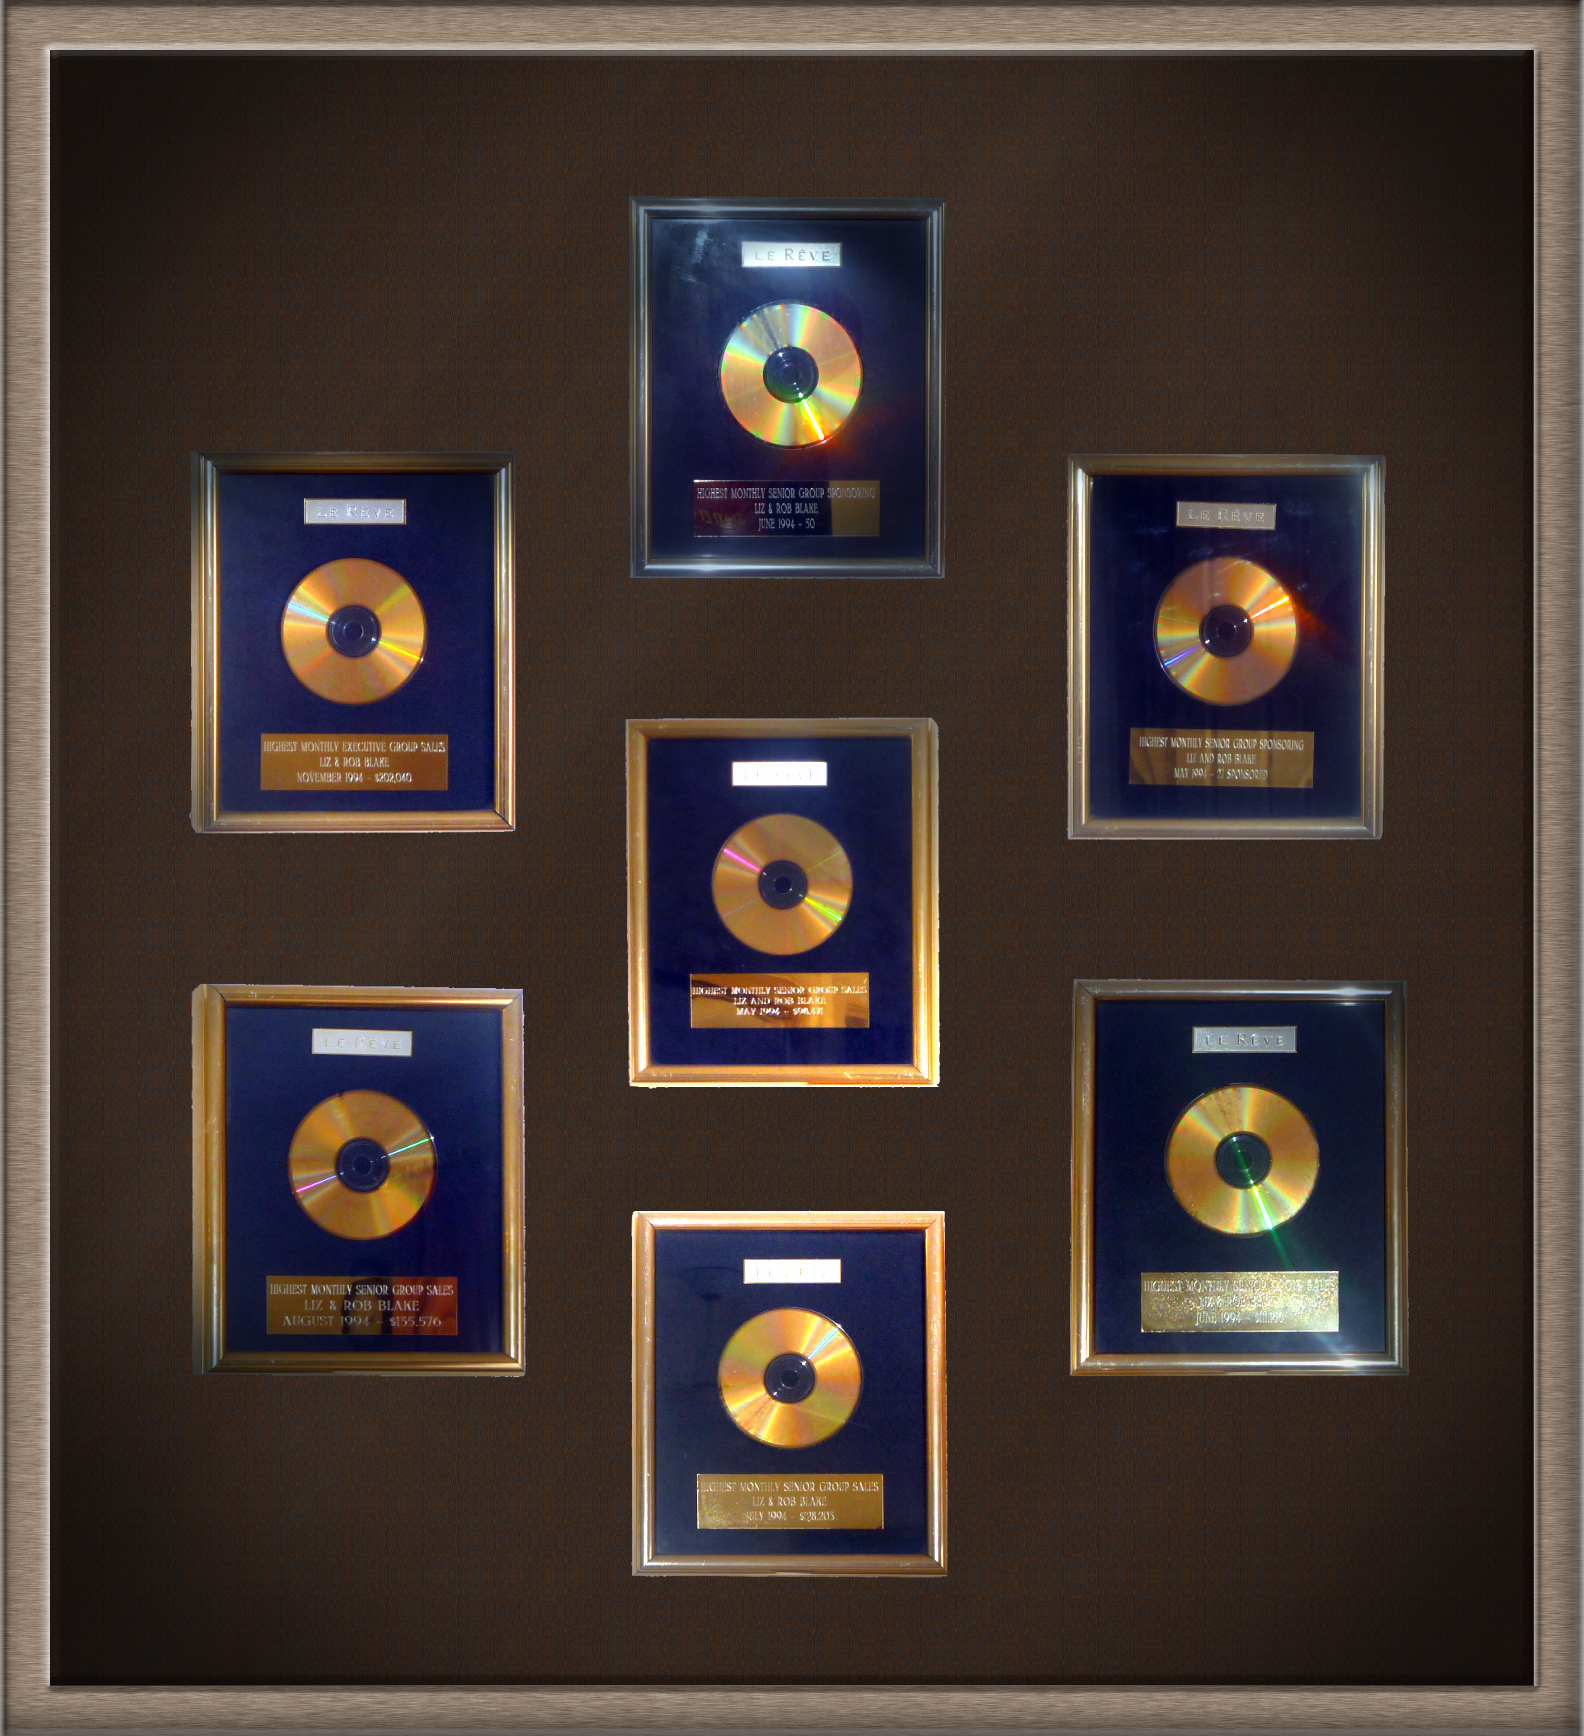 7 Gold Records - Personal & Team Performance